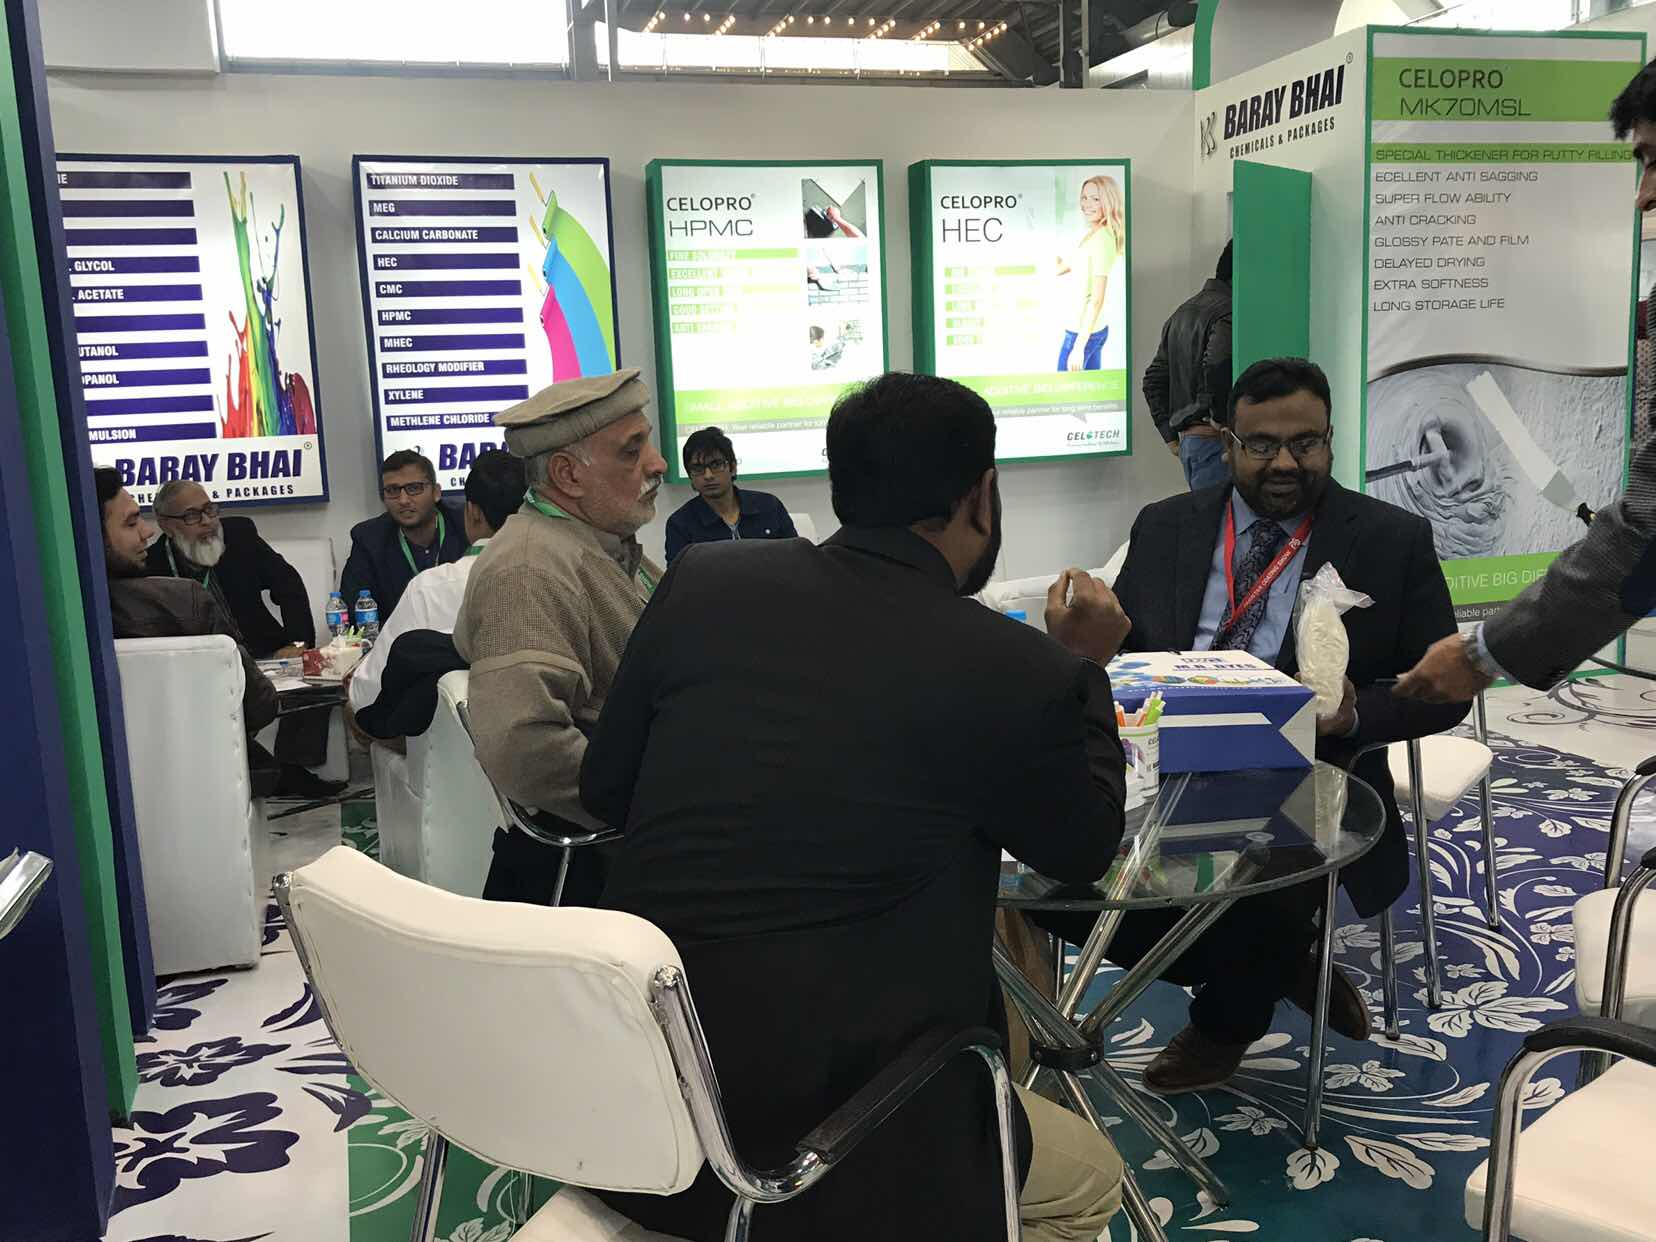 Pakisstan Coating Show, Celotech, Celopro, cellulose ethers